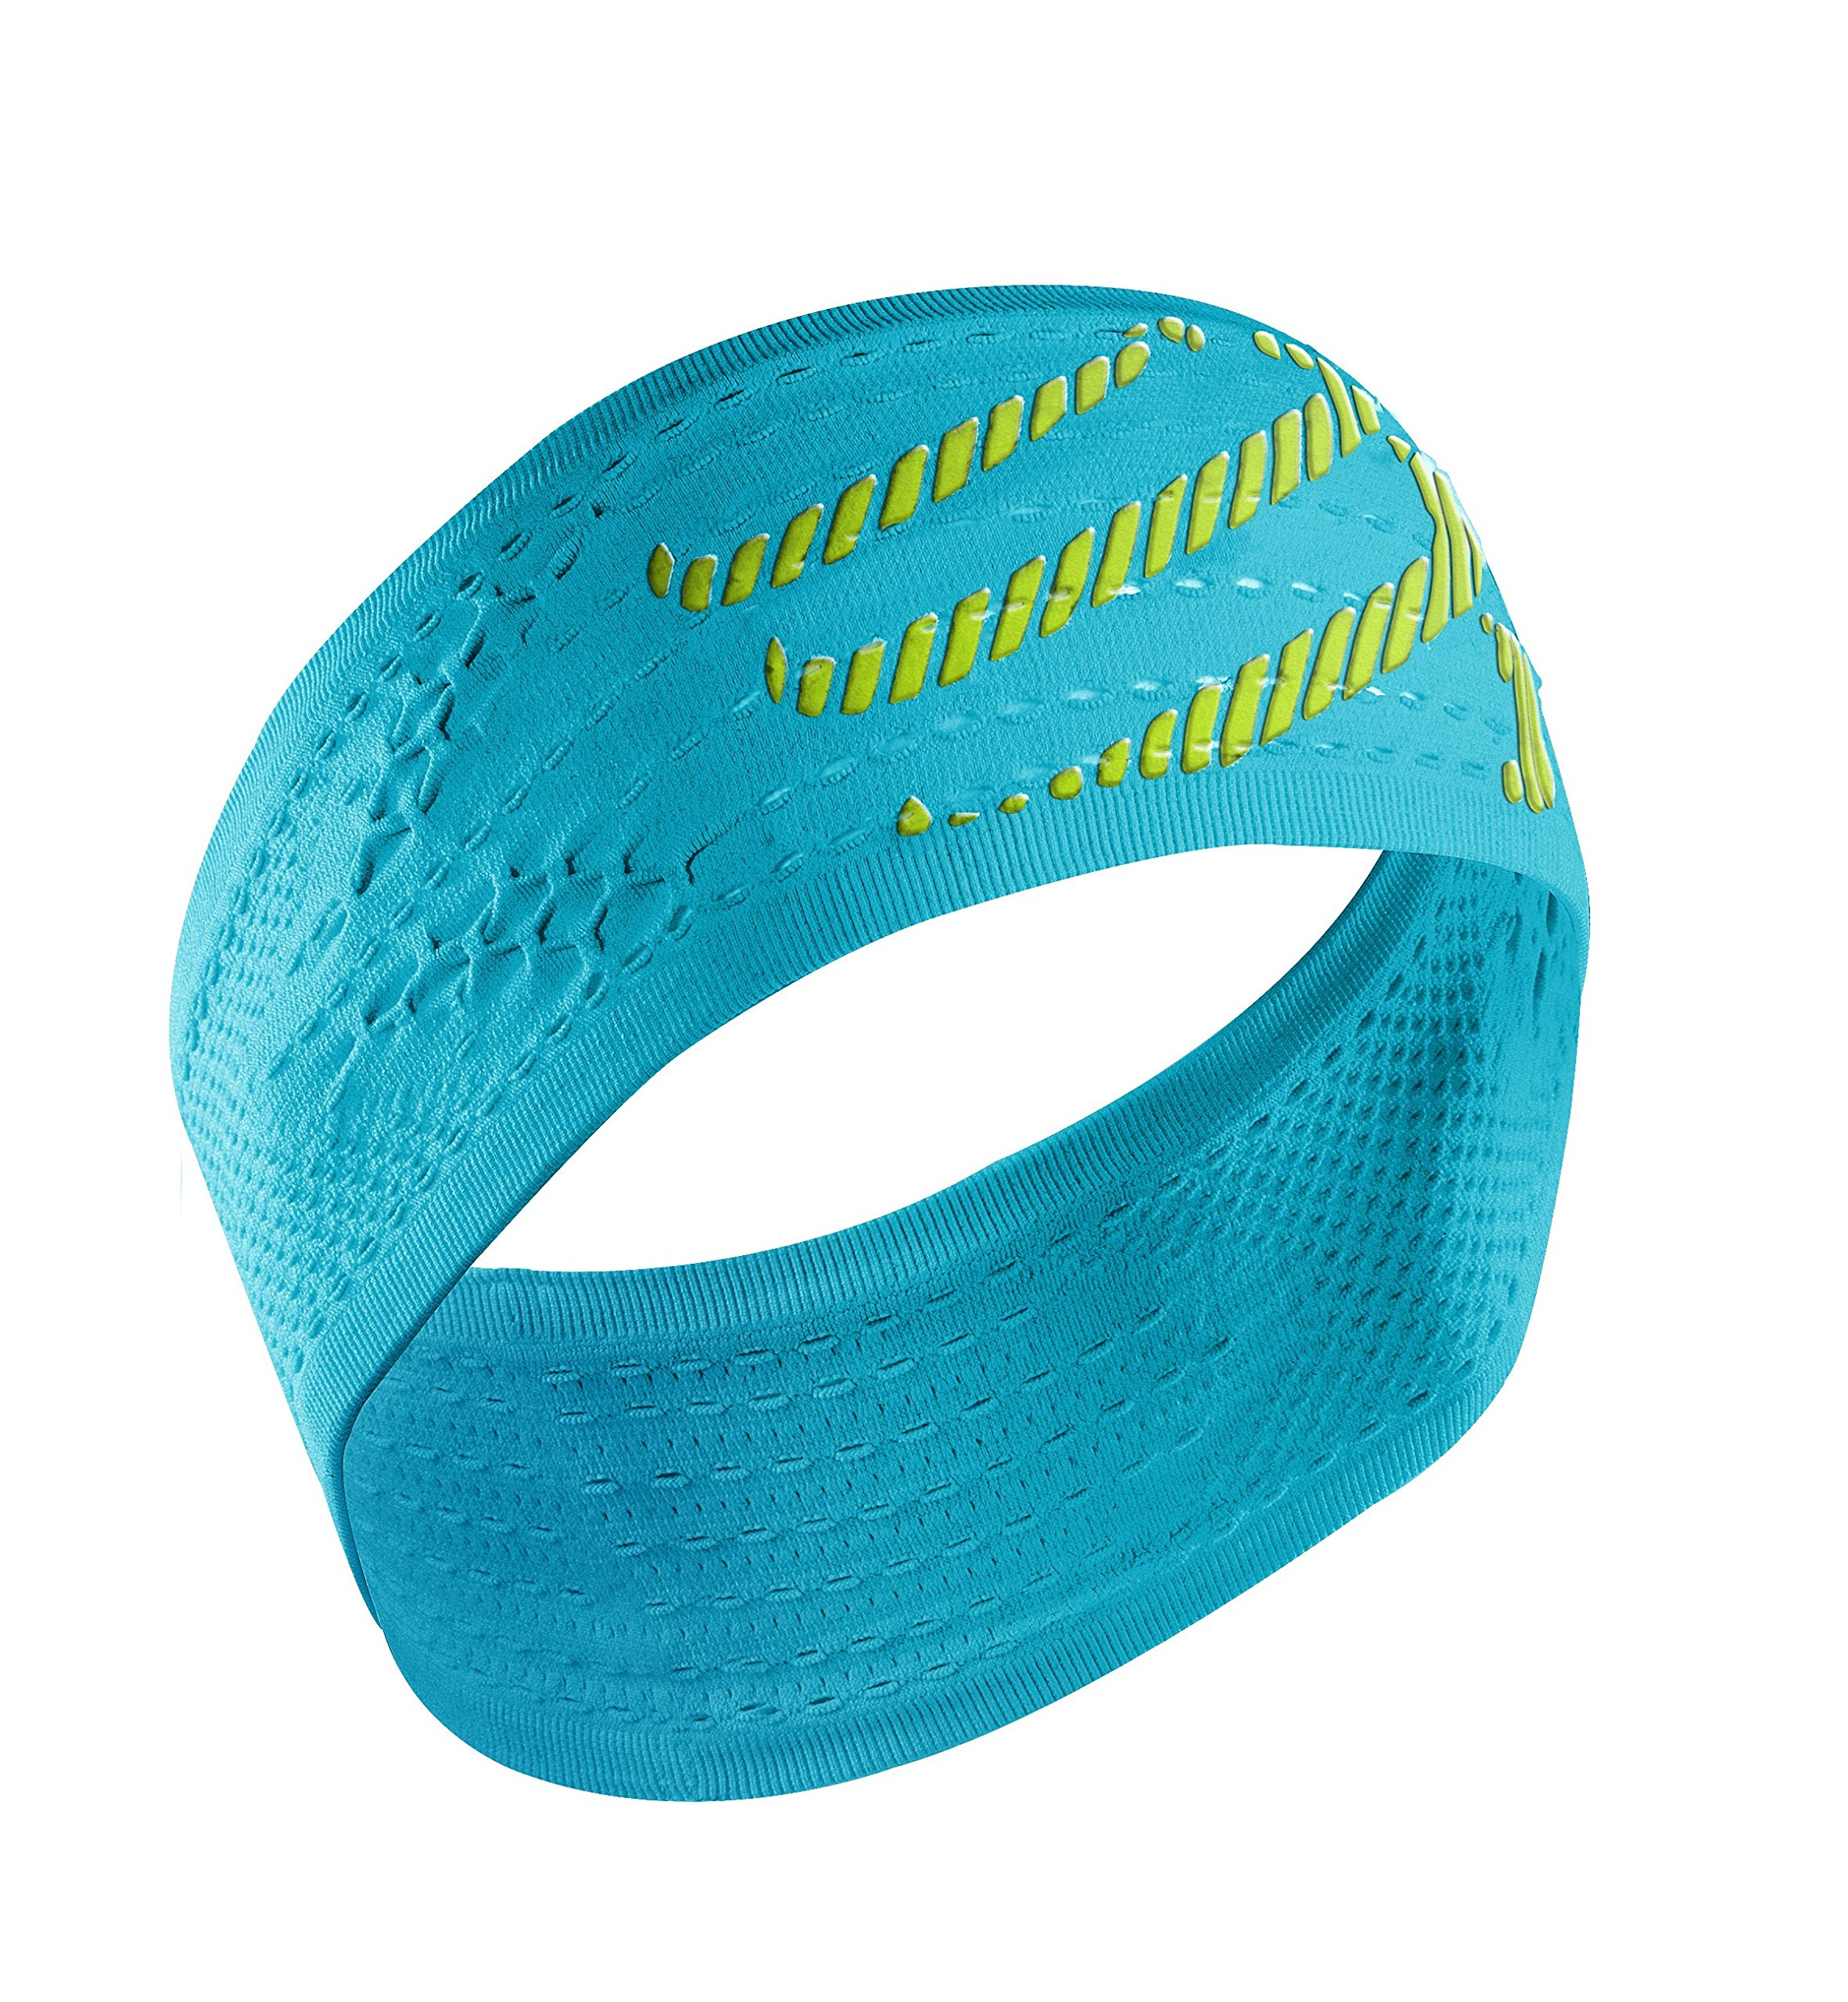 Compressport Headband On/Off Cinta, Unisex, Azul flúor, Talla Única product image